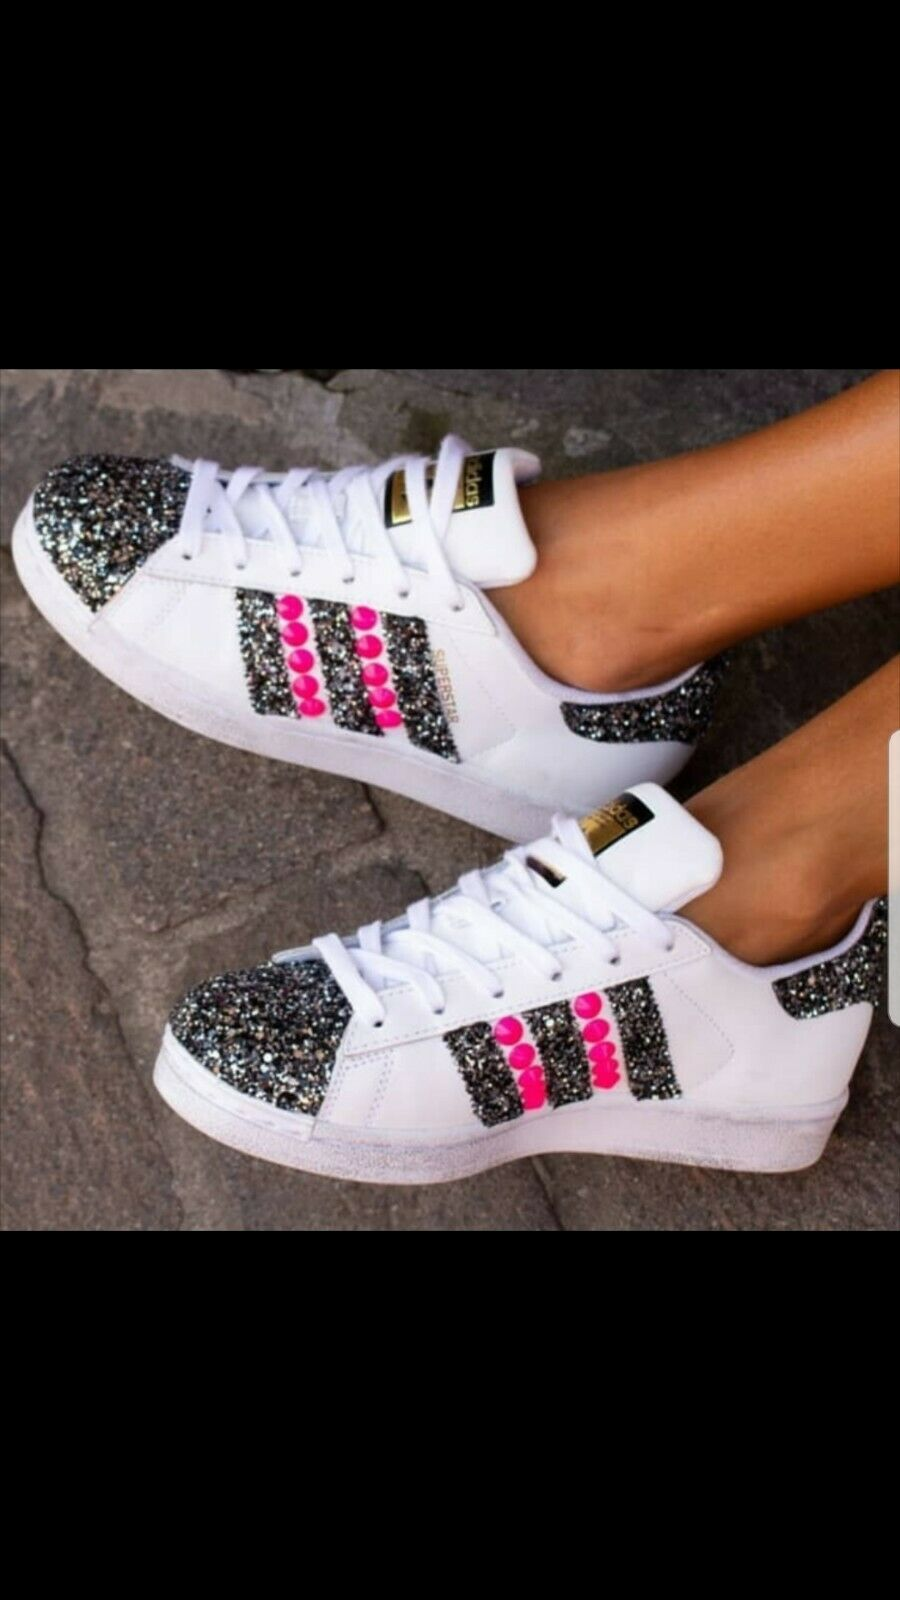 shoes Adidas Superstar with Glitter and Grey Stud